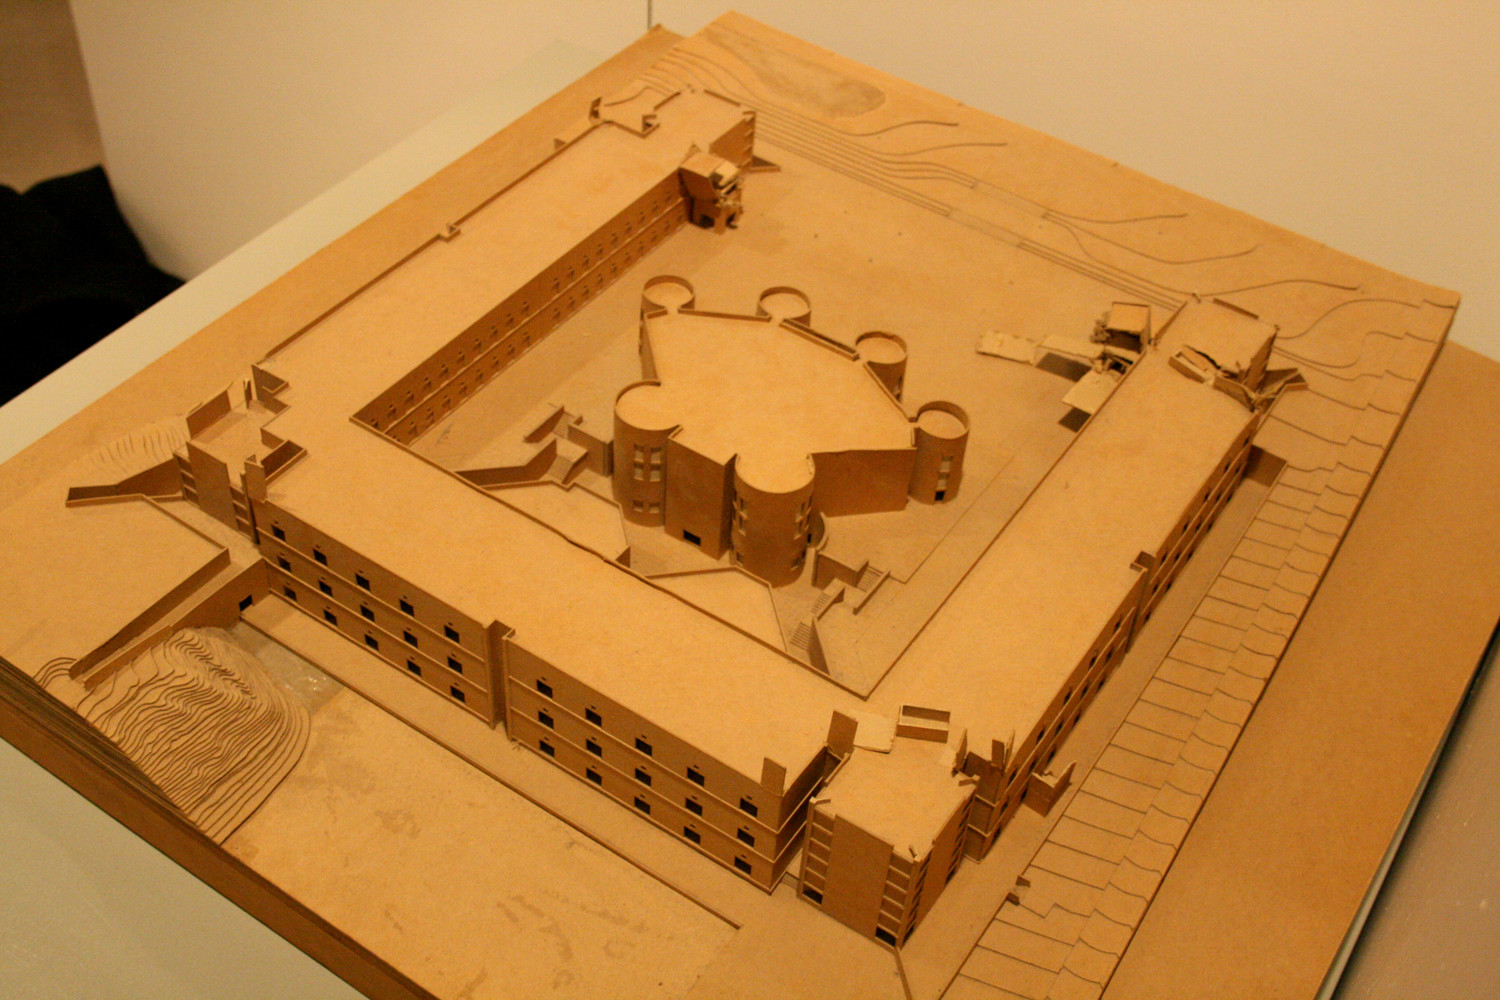 A model of Louis Kahn's Chemistry Building for the University of Virginia is housed with his papers at the University of Pennsylvania (Contributed photo by Brian Cofrancesco)